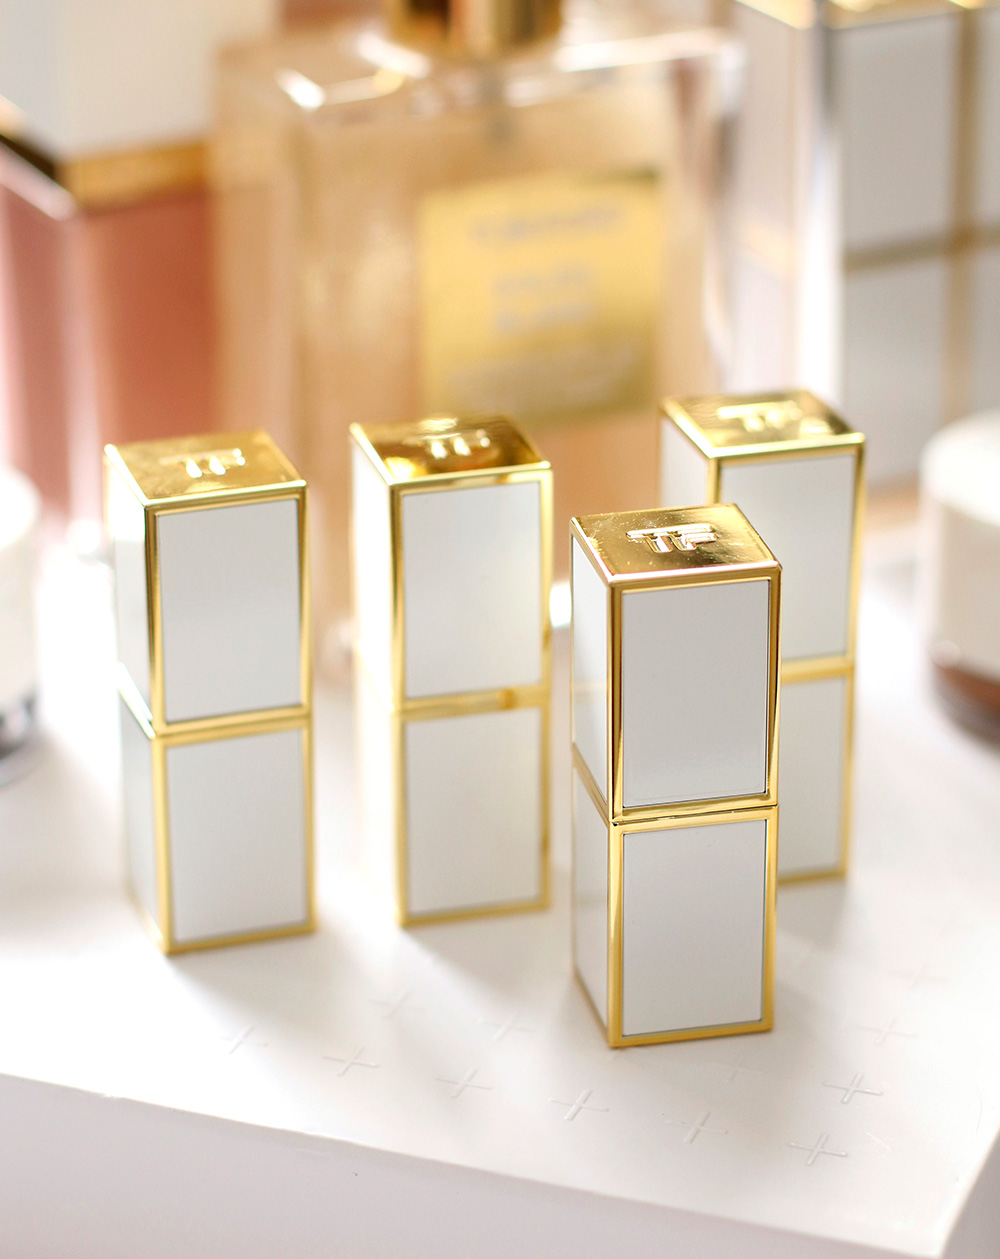 tom ford lip balm packaging